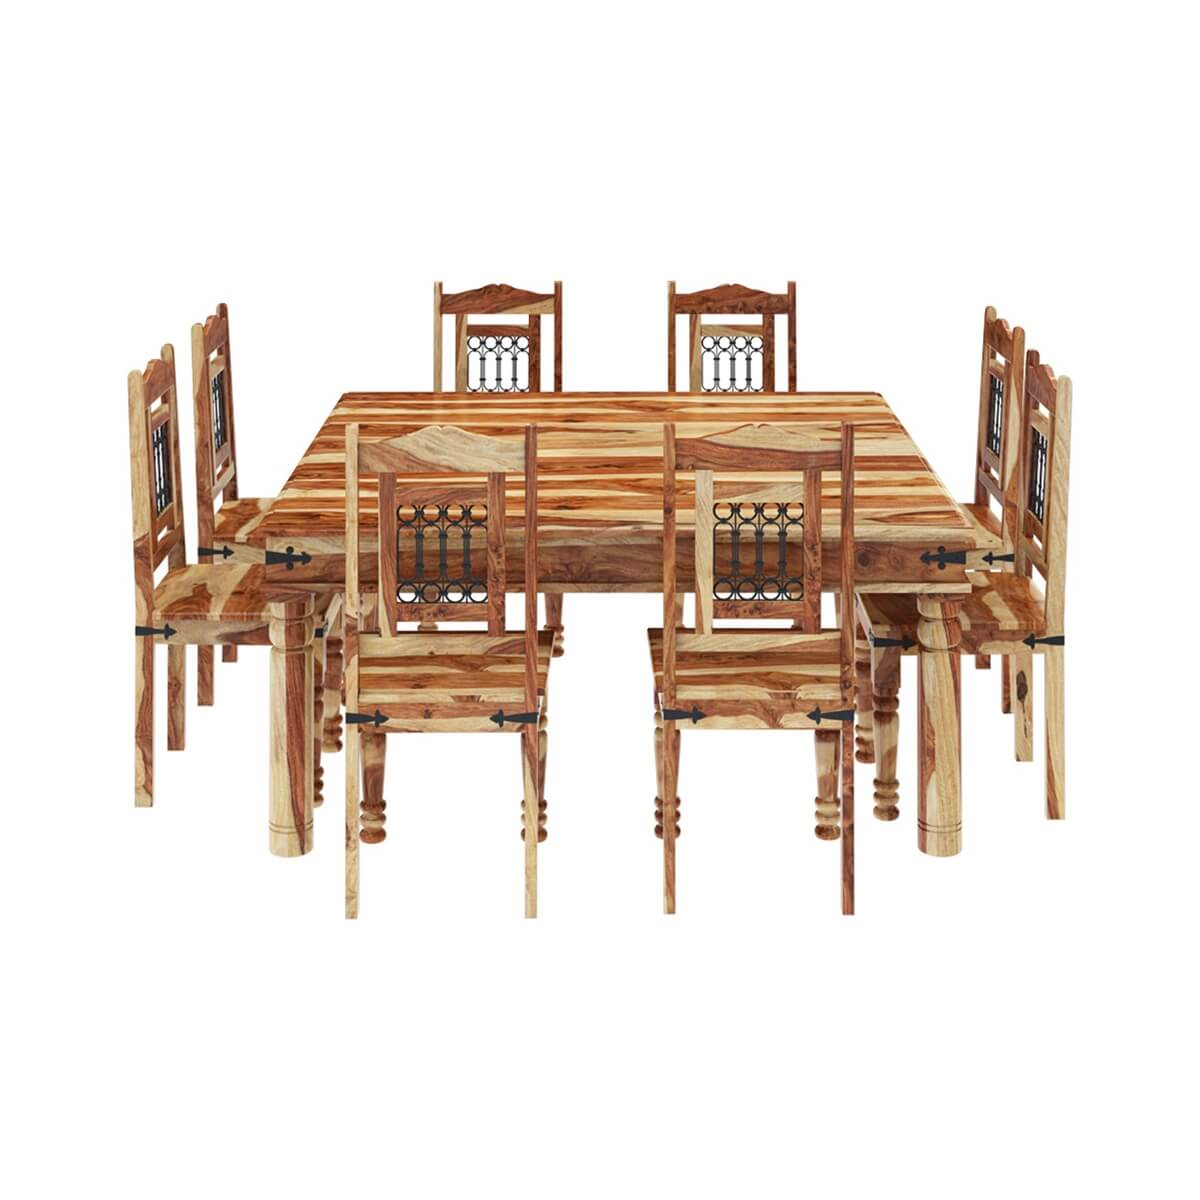 Peoria Solid Wood Large Square Dining Table & Chair Set. Mosaic Tile Kitchen Backsplash. Two Toned Kitchen Cabinets. Farmhouse Dining Table. Painted Deck Images. Pantry Cabinet Ikea. Industrial Coffee Table. Colonial Fence. Black Mirrored Nightstand